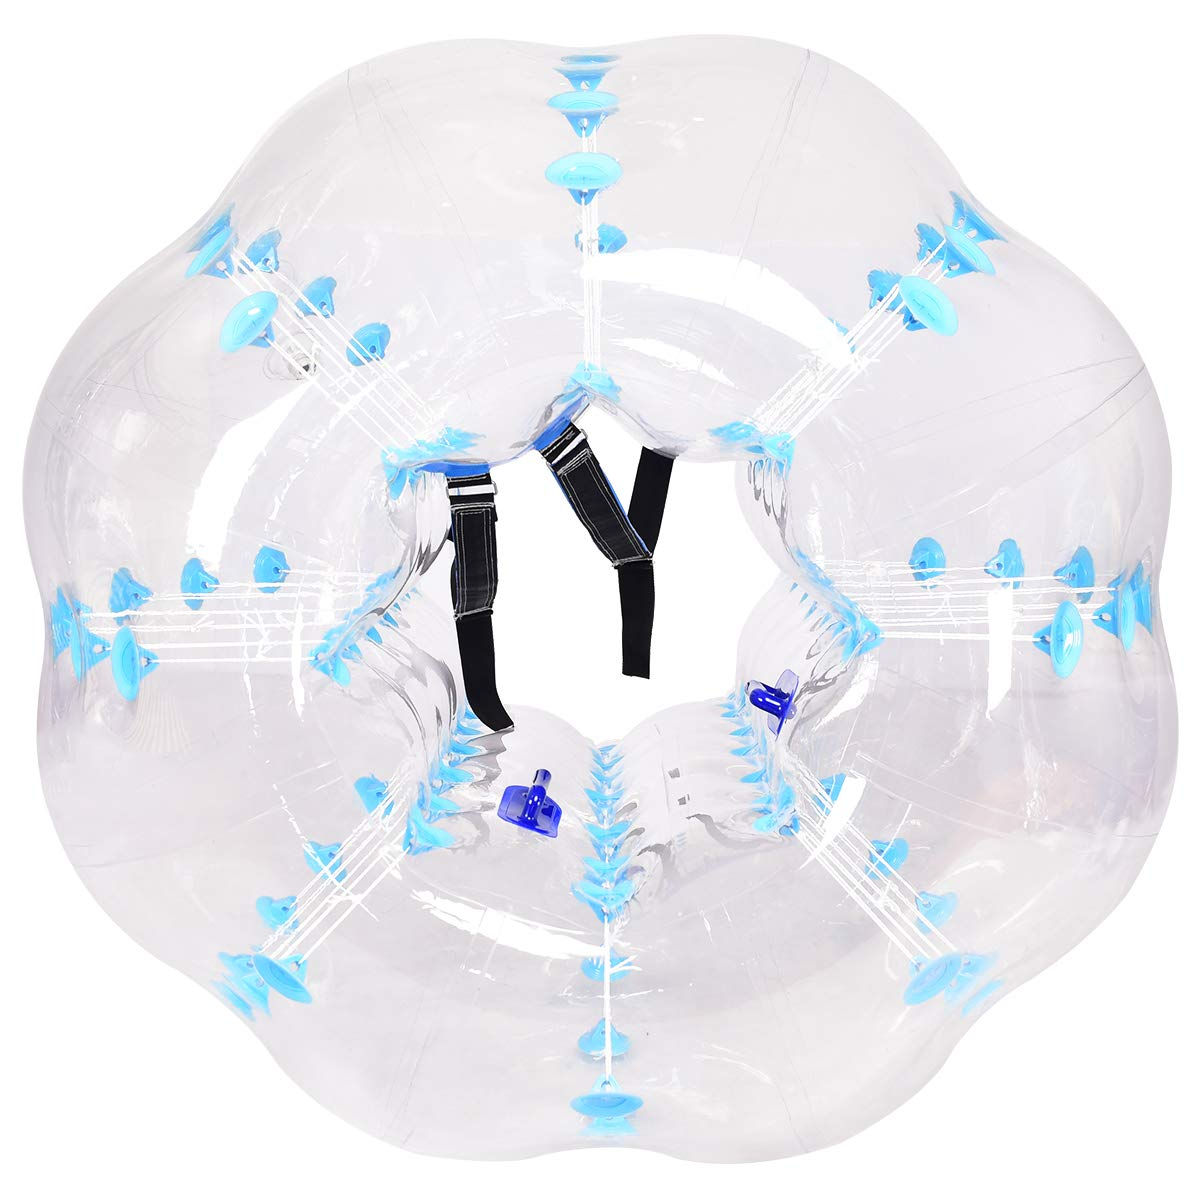 Costzon Inflatable Bumper Soccer Ball, Dia 5ft (1.5m) Giant Human Hamster Bubble Ball, 8mm Thickness Transparent PVC Zorb Ball for Kids, Teens Outdoor Team Gaming Play (Light Blue) by Costzon (Image #8)